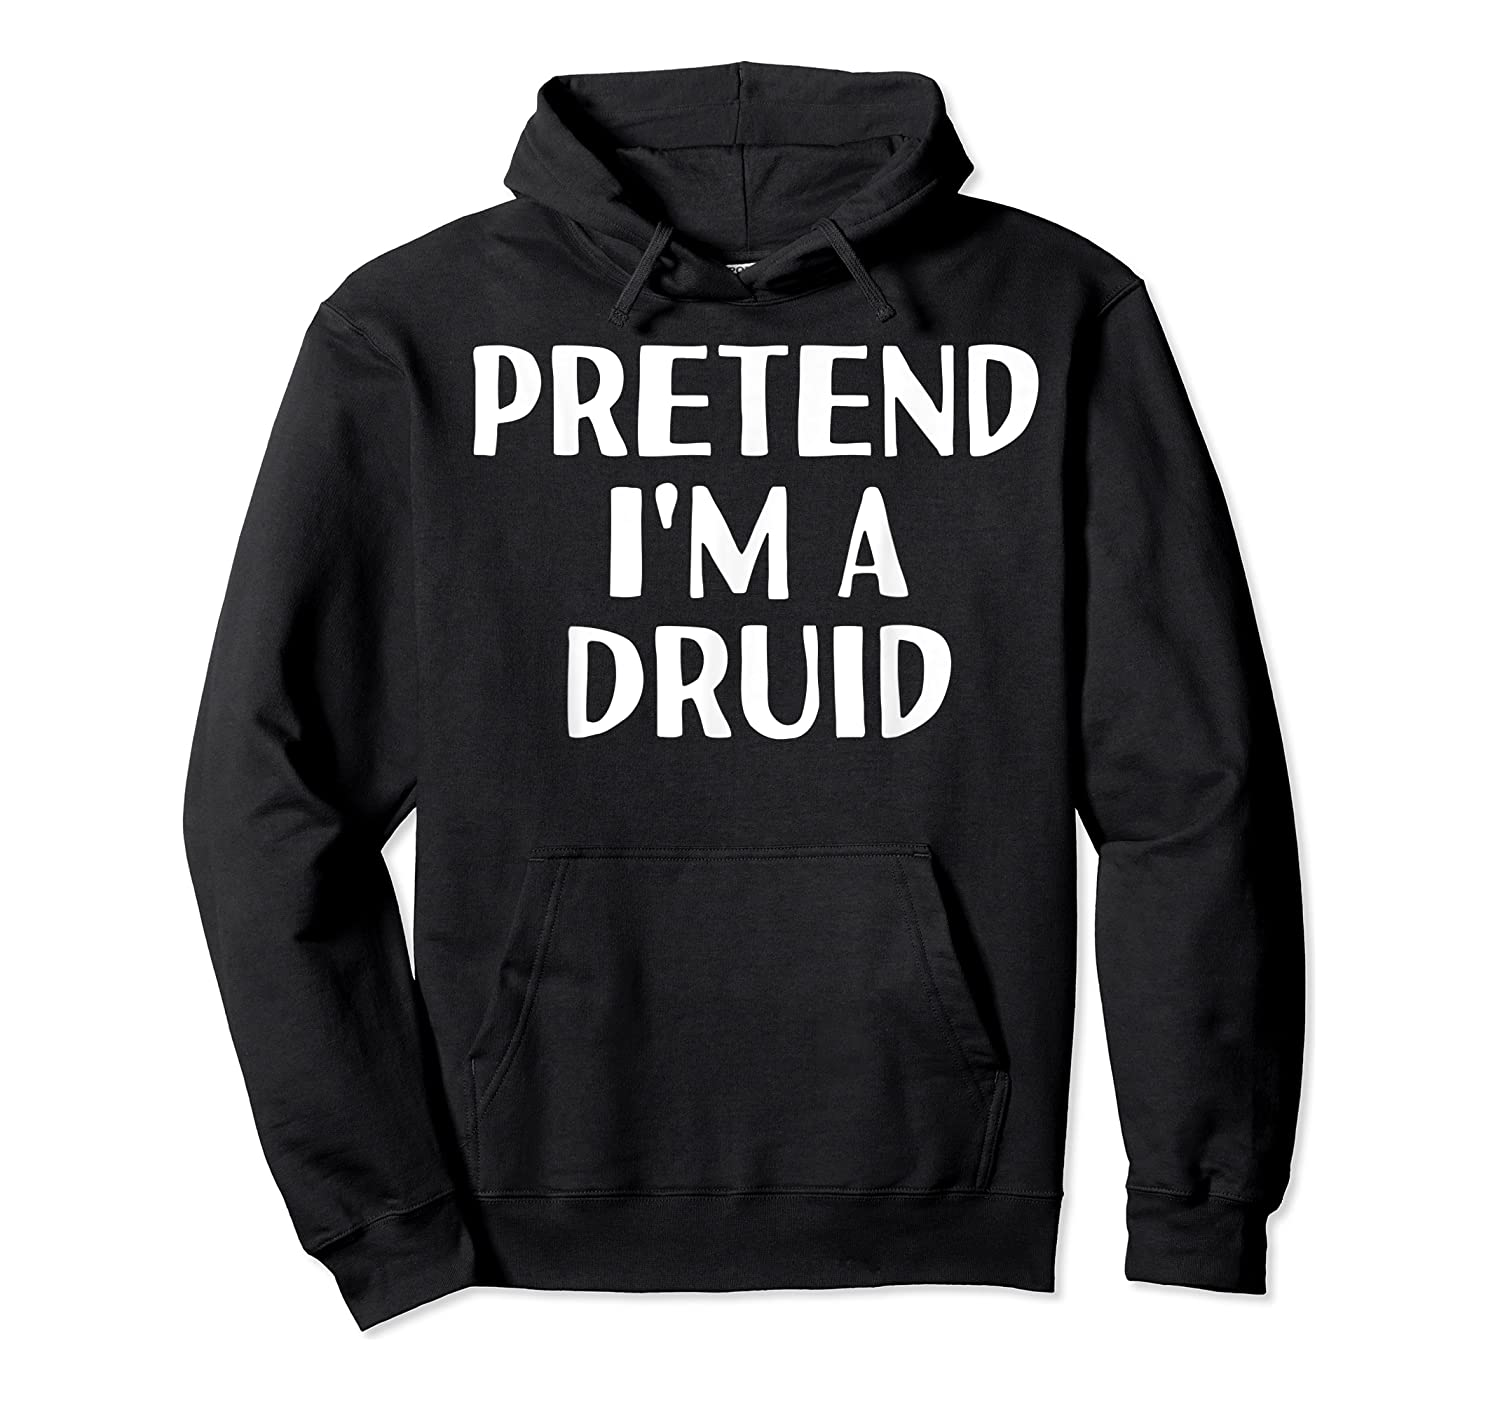 I'm A Druid Funny Halloween Diy Costume Shirts Unisex Pullover Hoodie